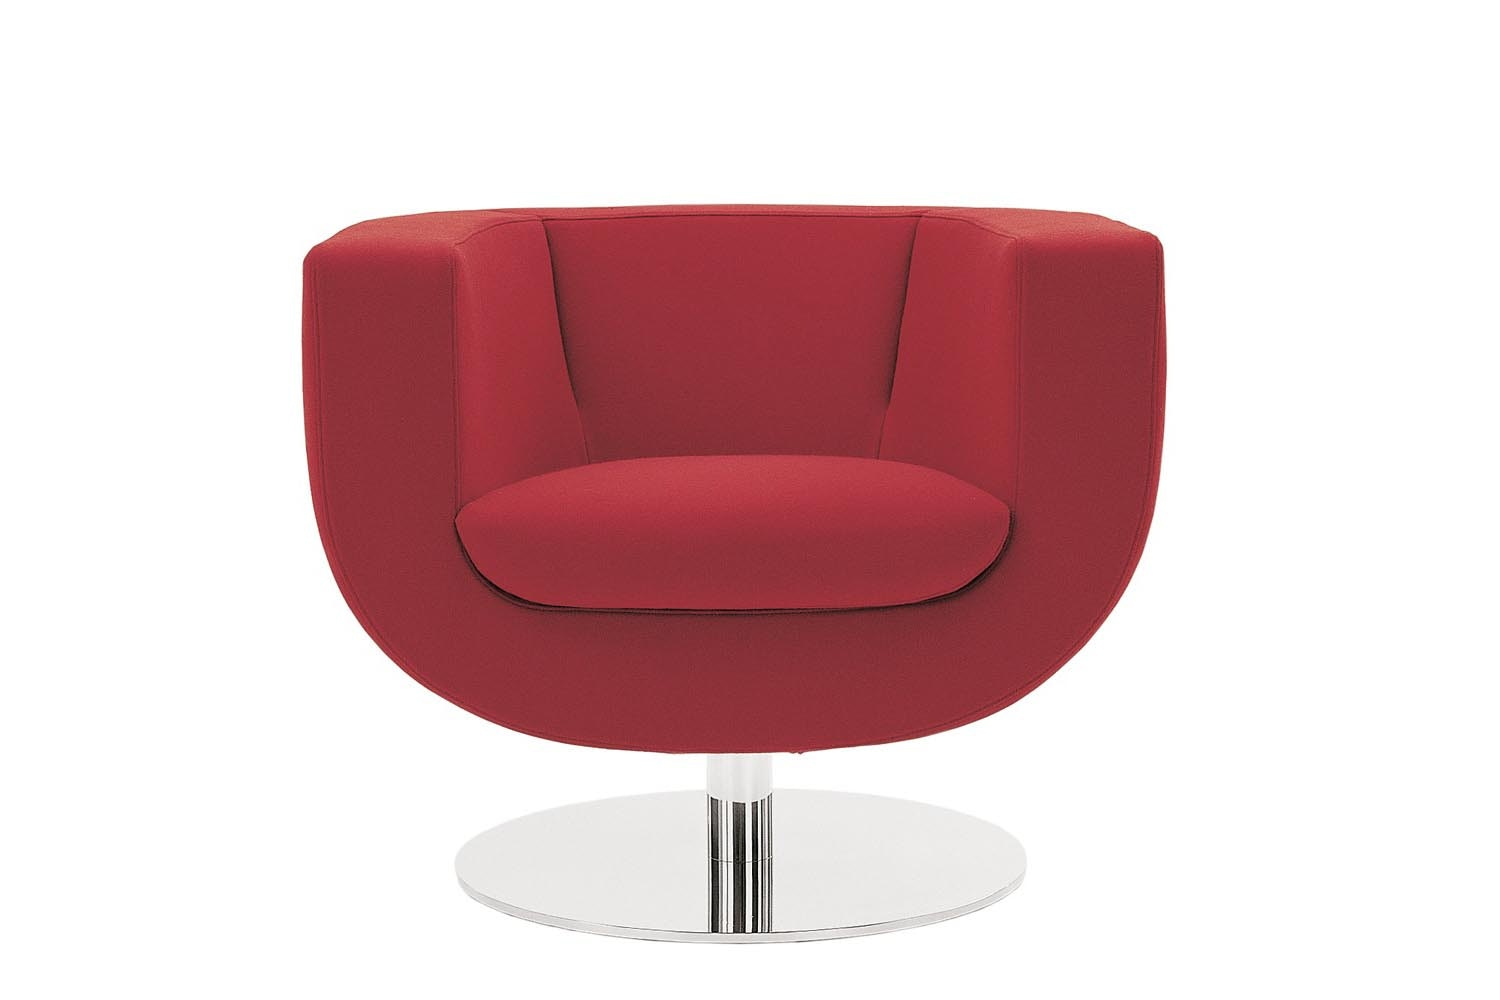 Tulip Armchair by Jeffrey Bernett for B&B Italia